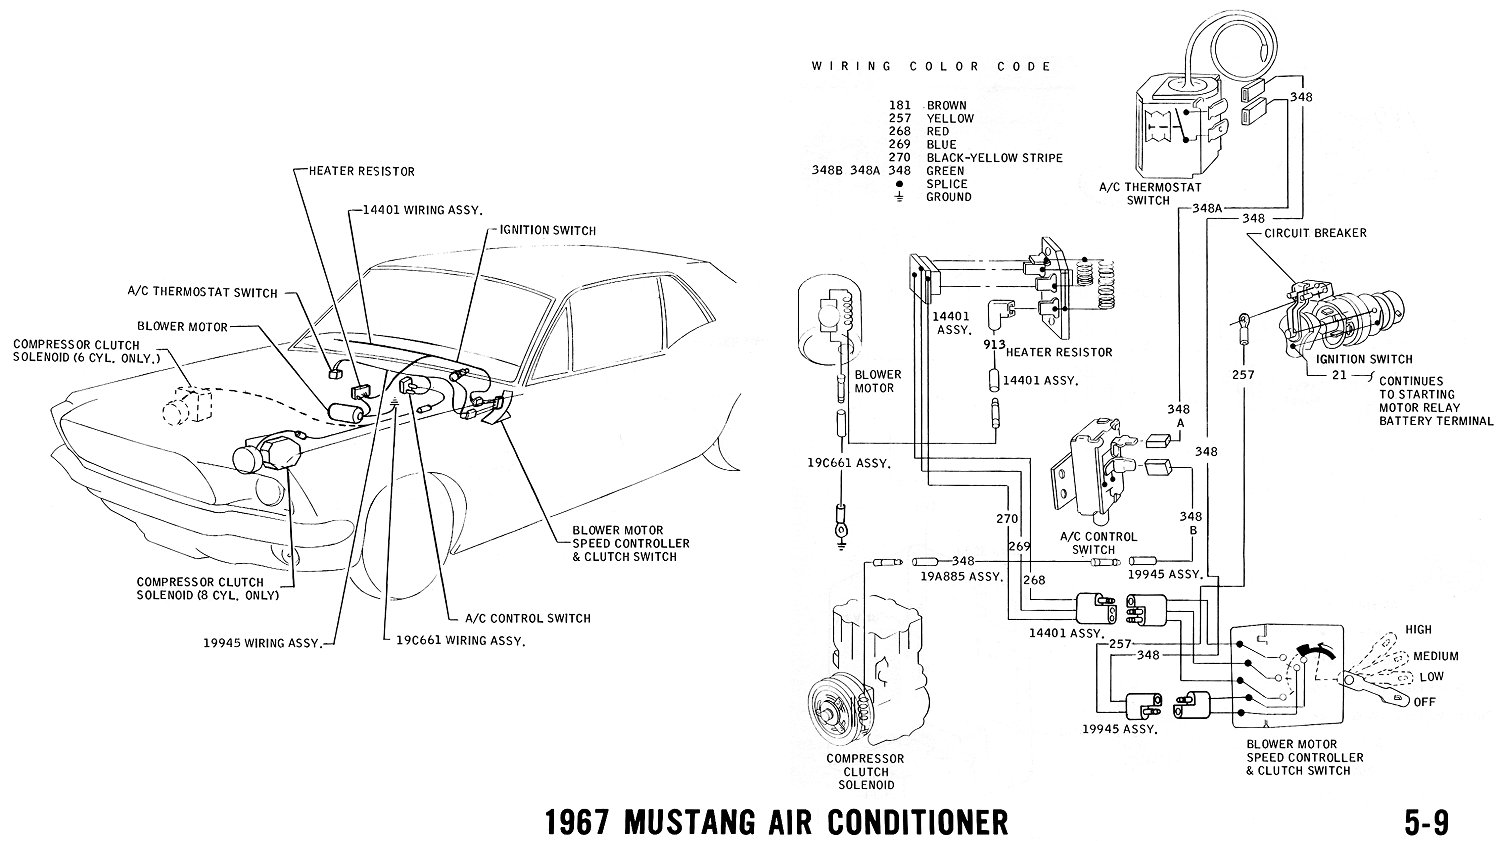 67ac 1970 mustang ac control wiring diagram 1970 ford alternator wiring engine wiring diagram 1967 mustang v8 at mifinder.co